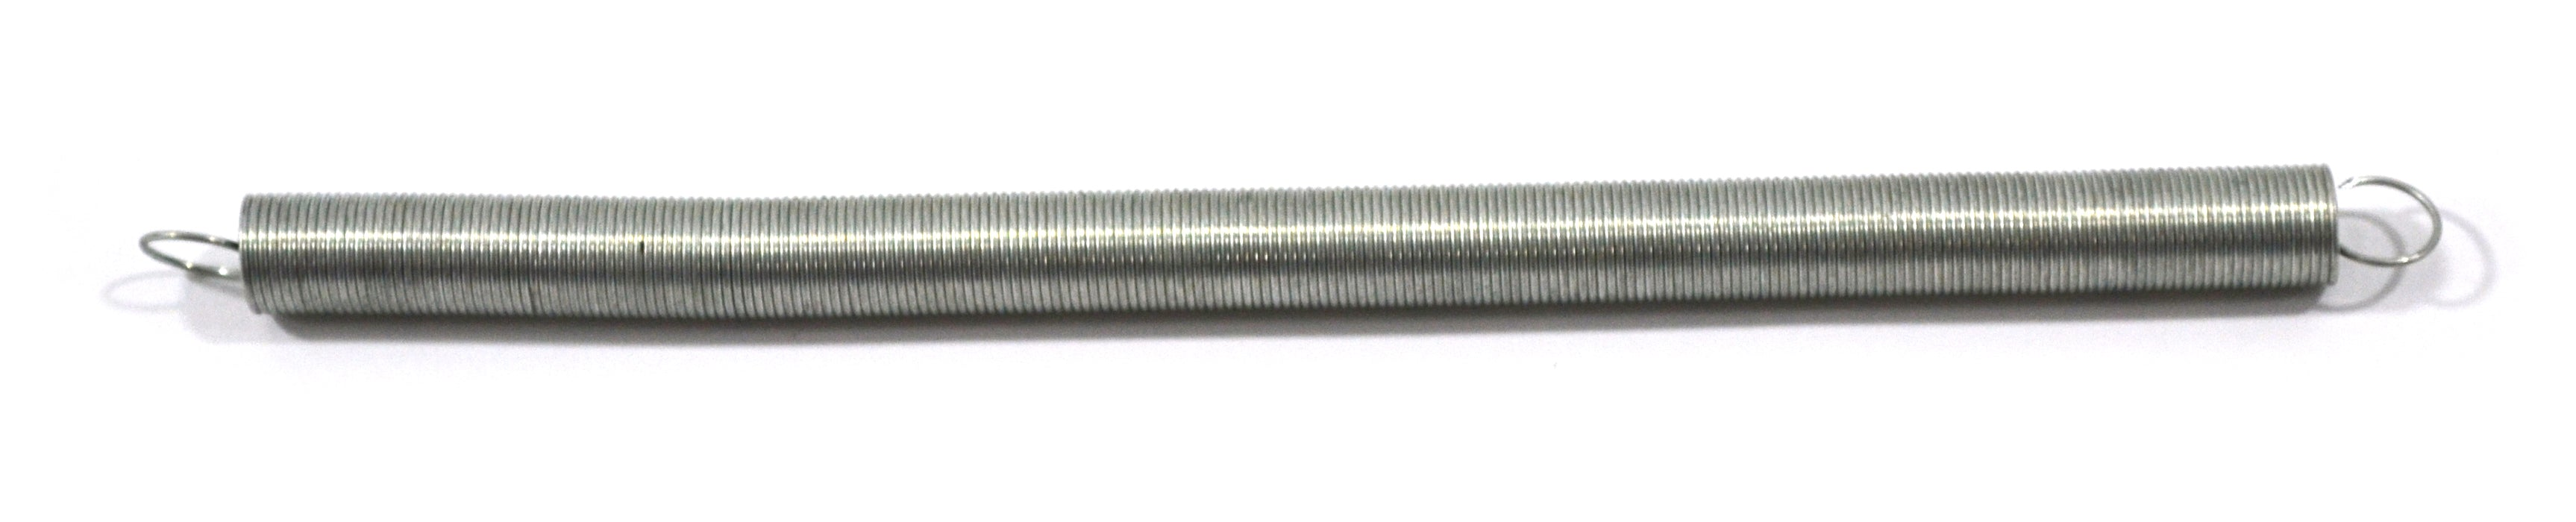 Springs Steel - Extension